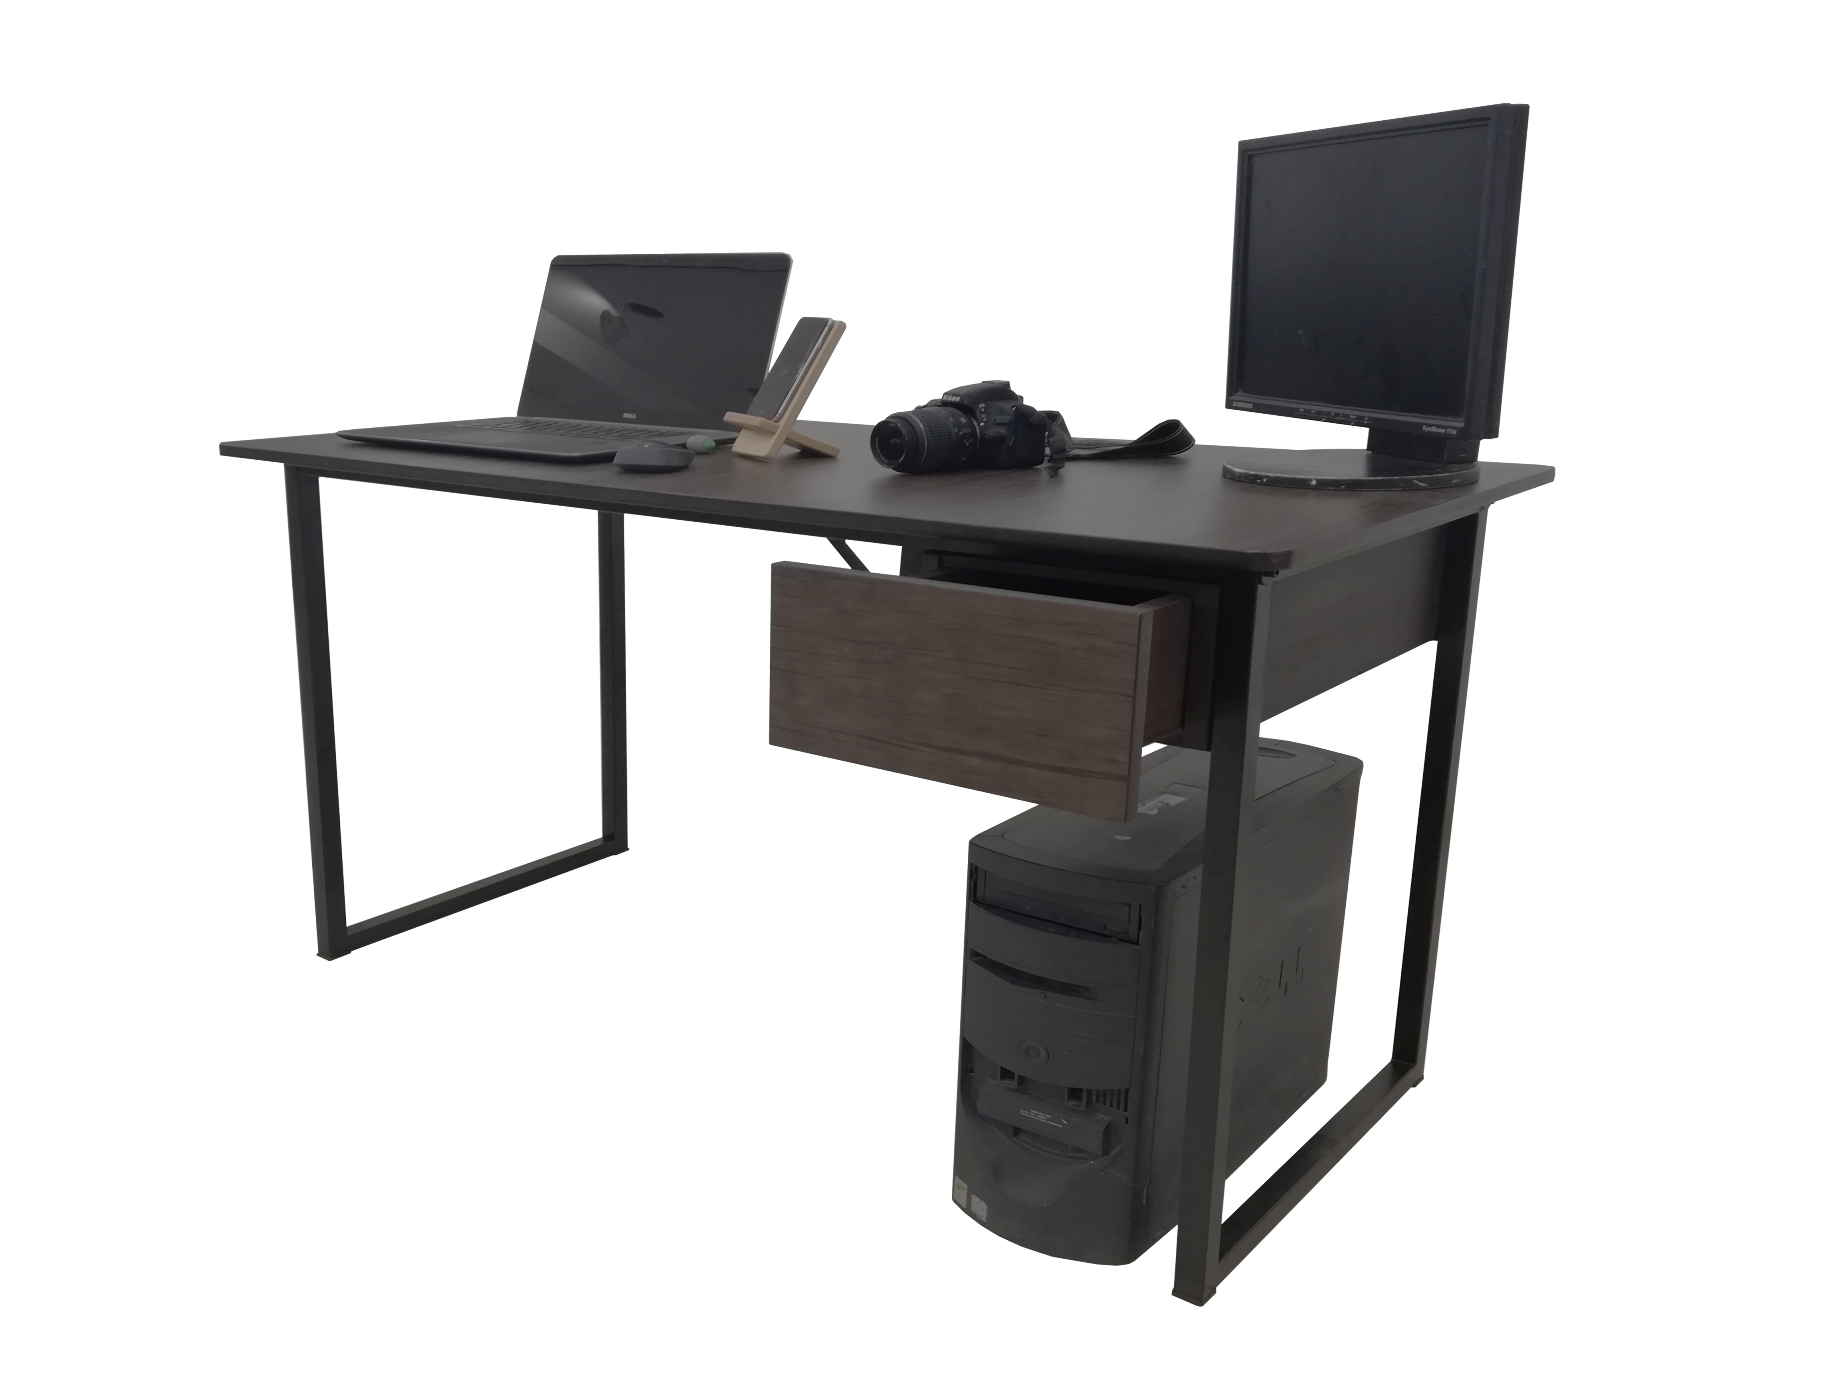 Modular Computer Study Table for Office and Home with Drawer Dark Brown